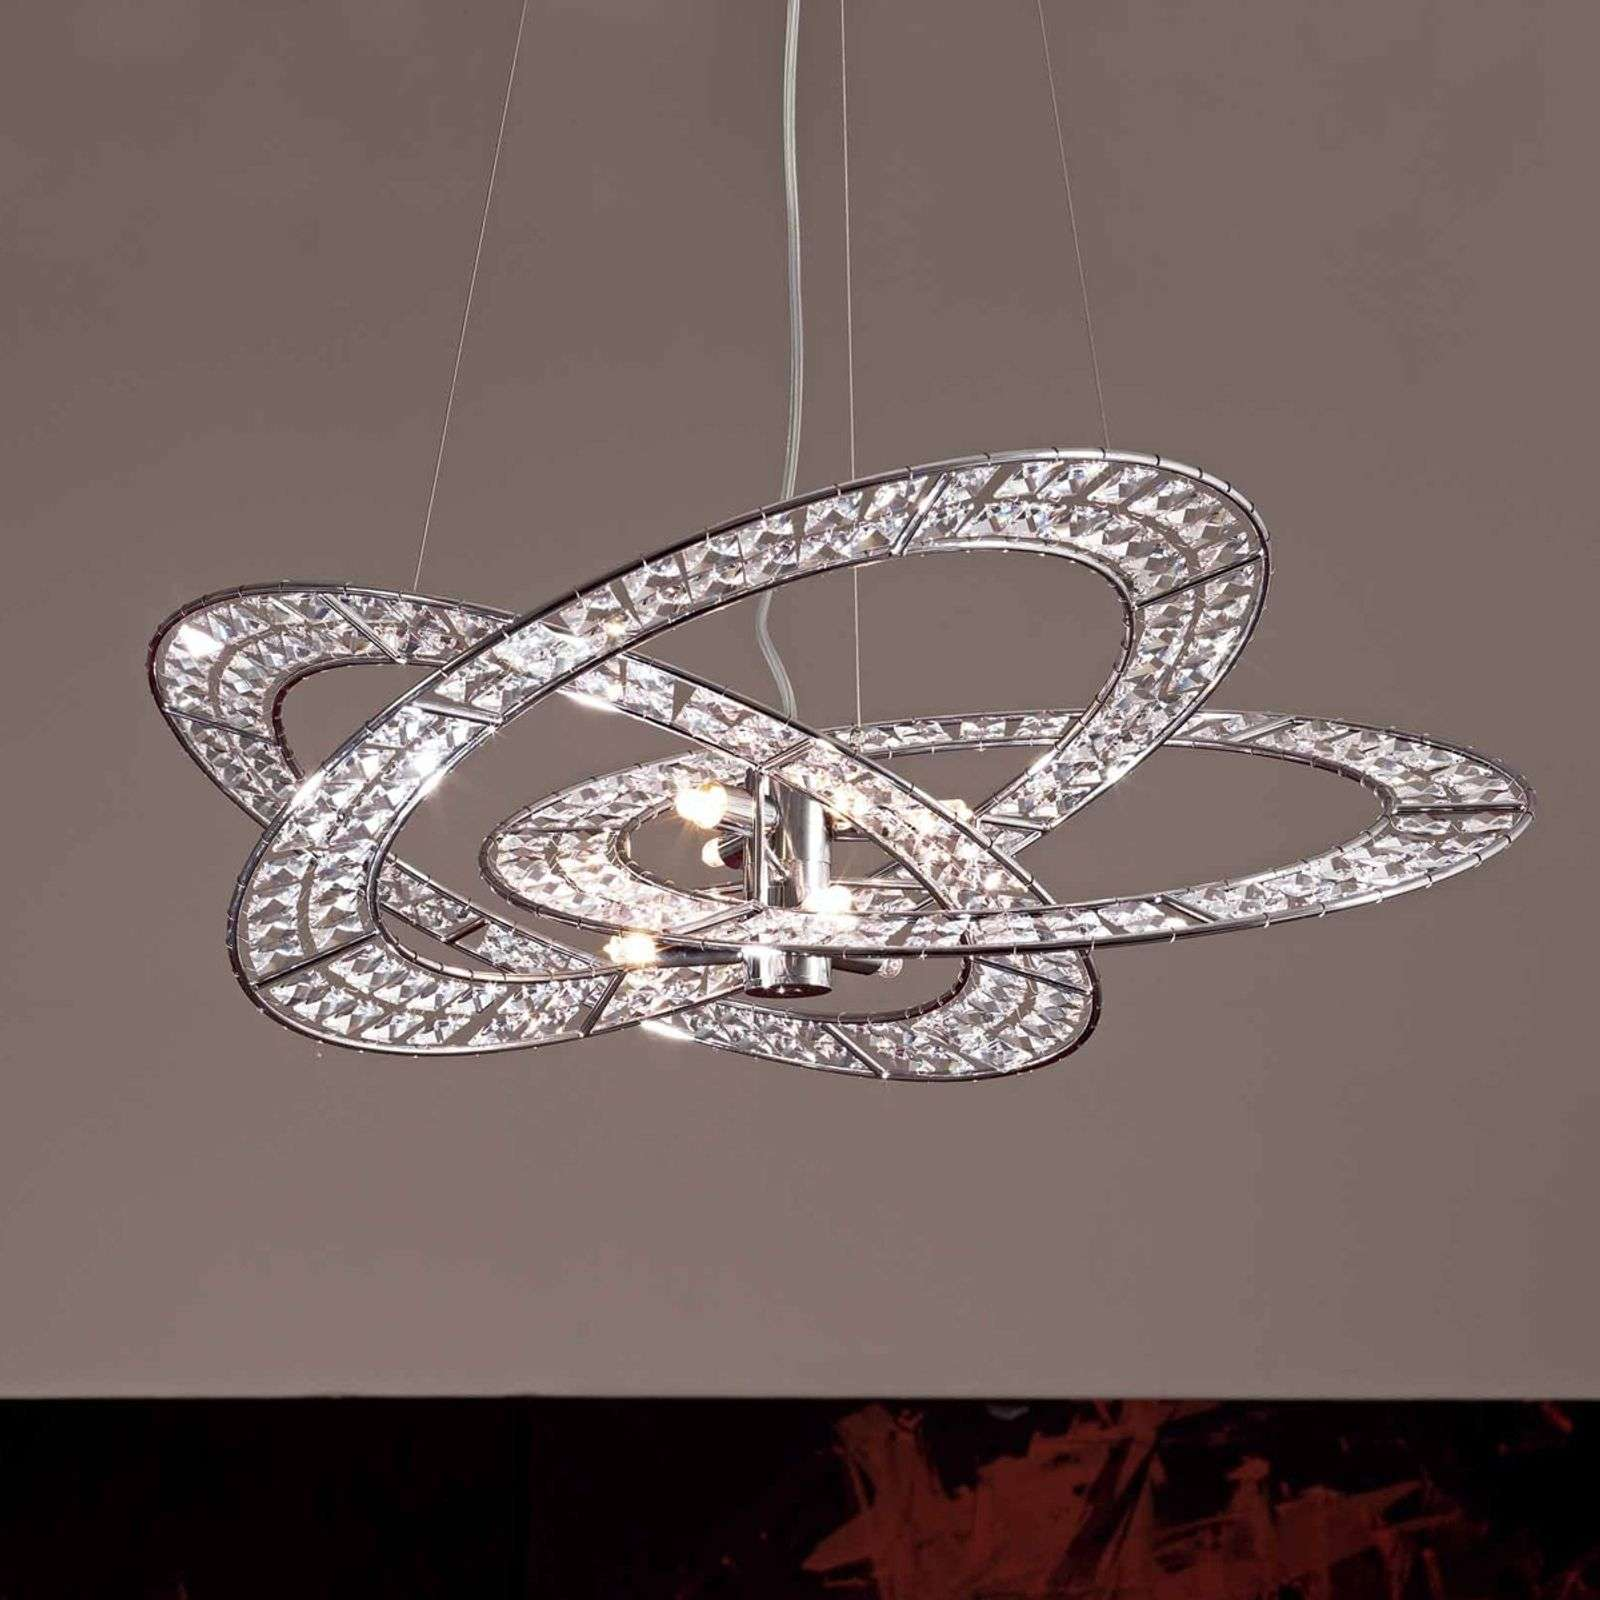 Suspension cristal Trilogy à 6 lampes transparente